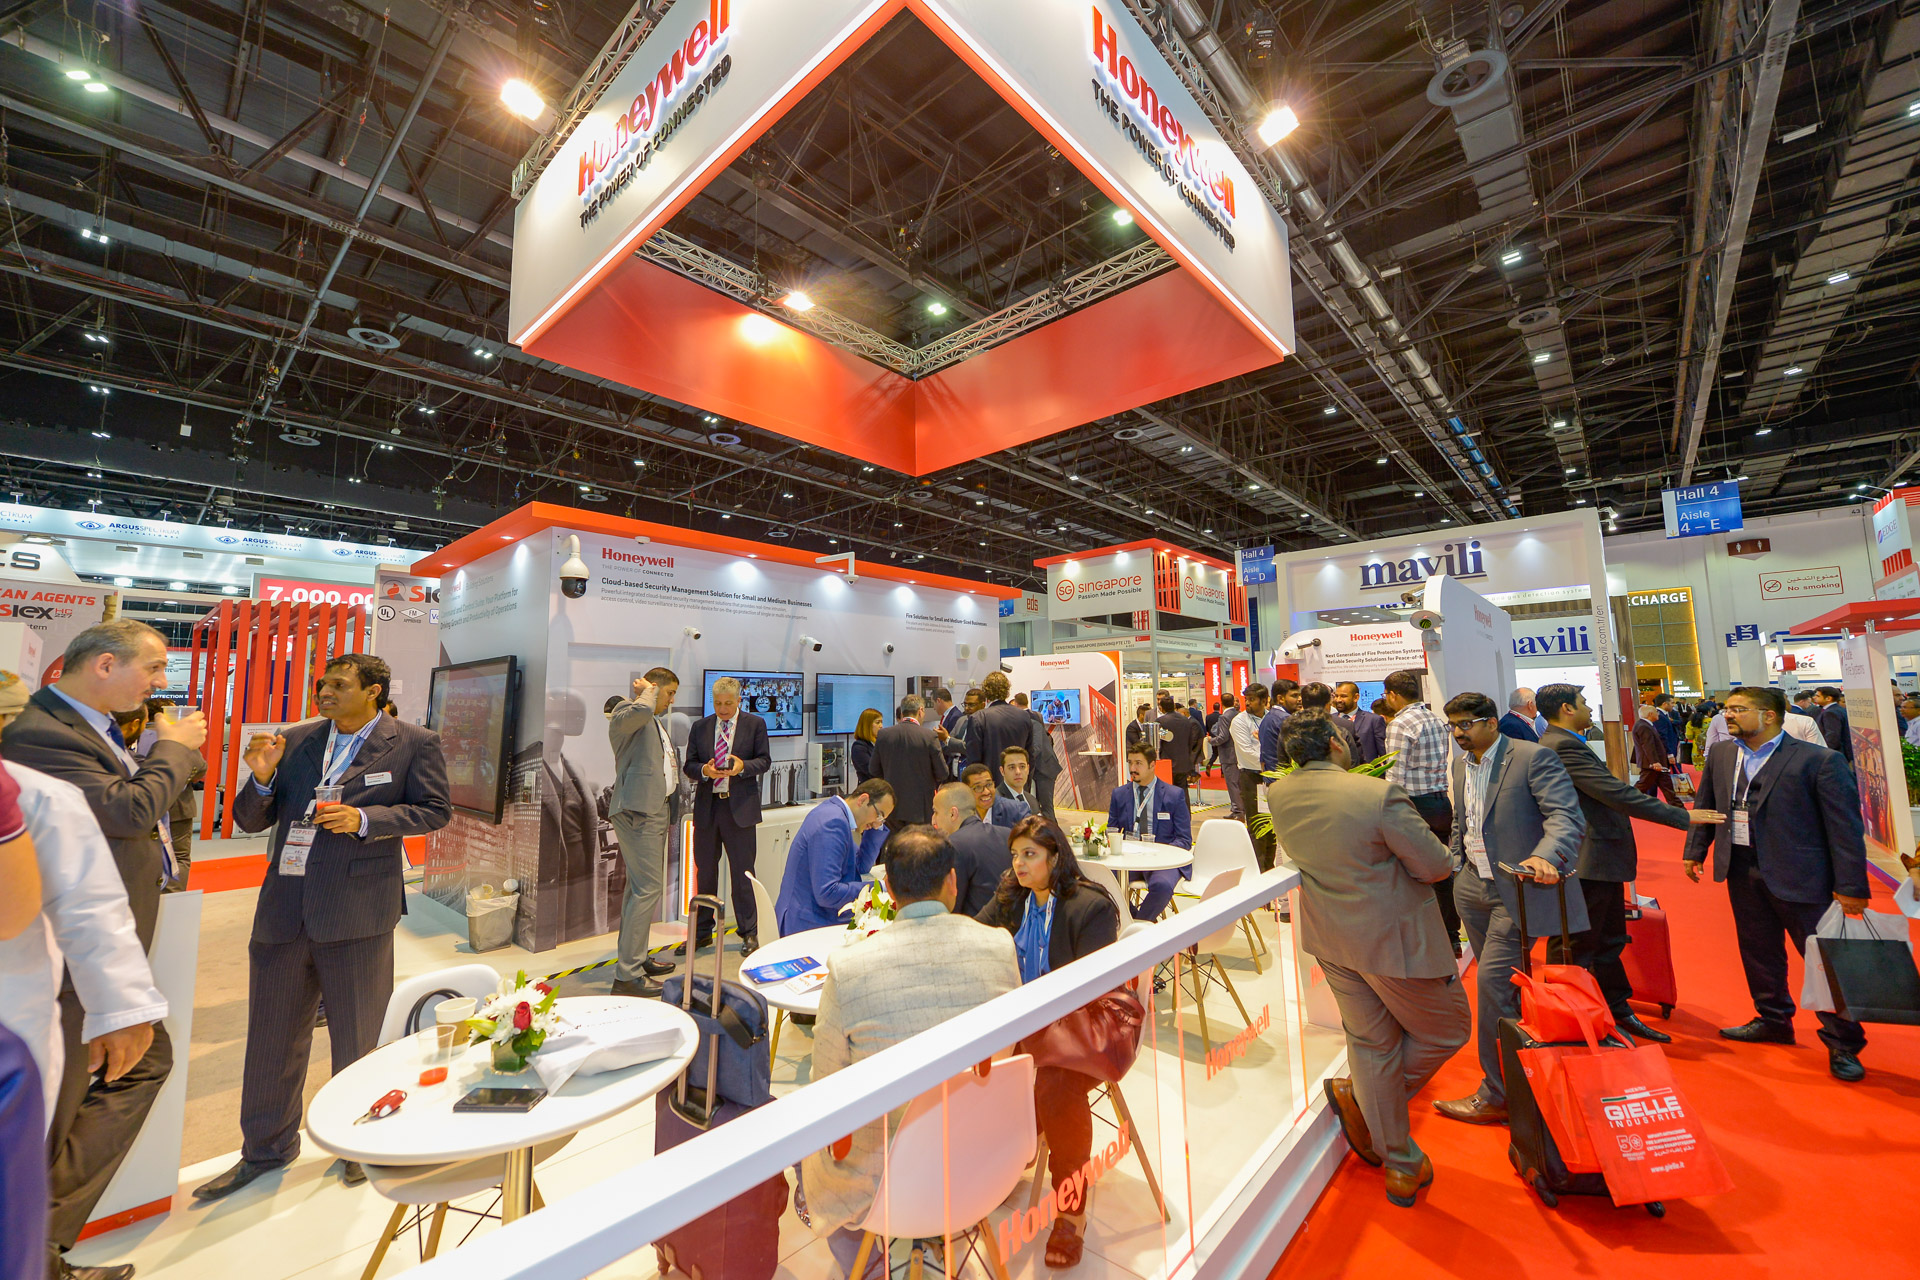 Intersec 2019